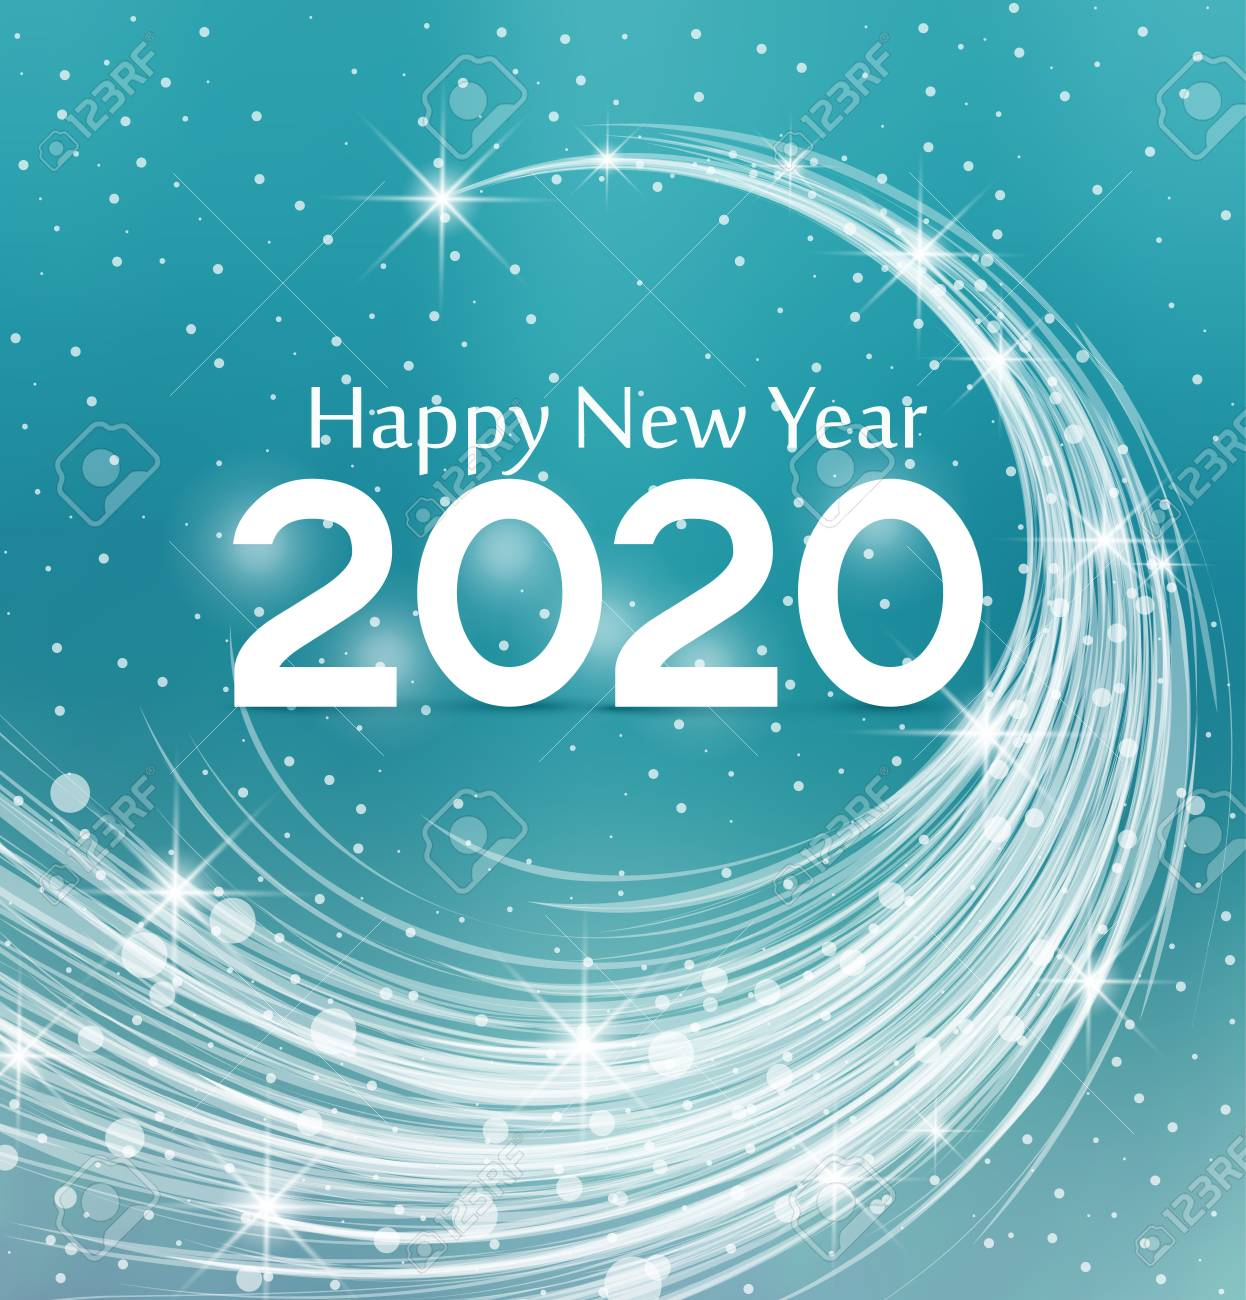 Happy New Year Clipart 2020 25